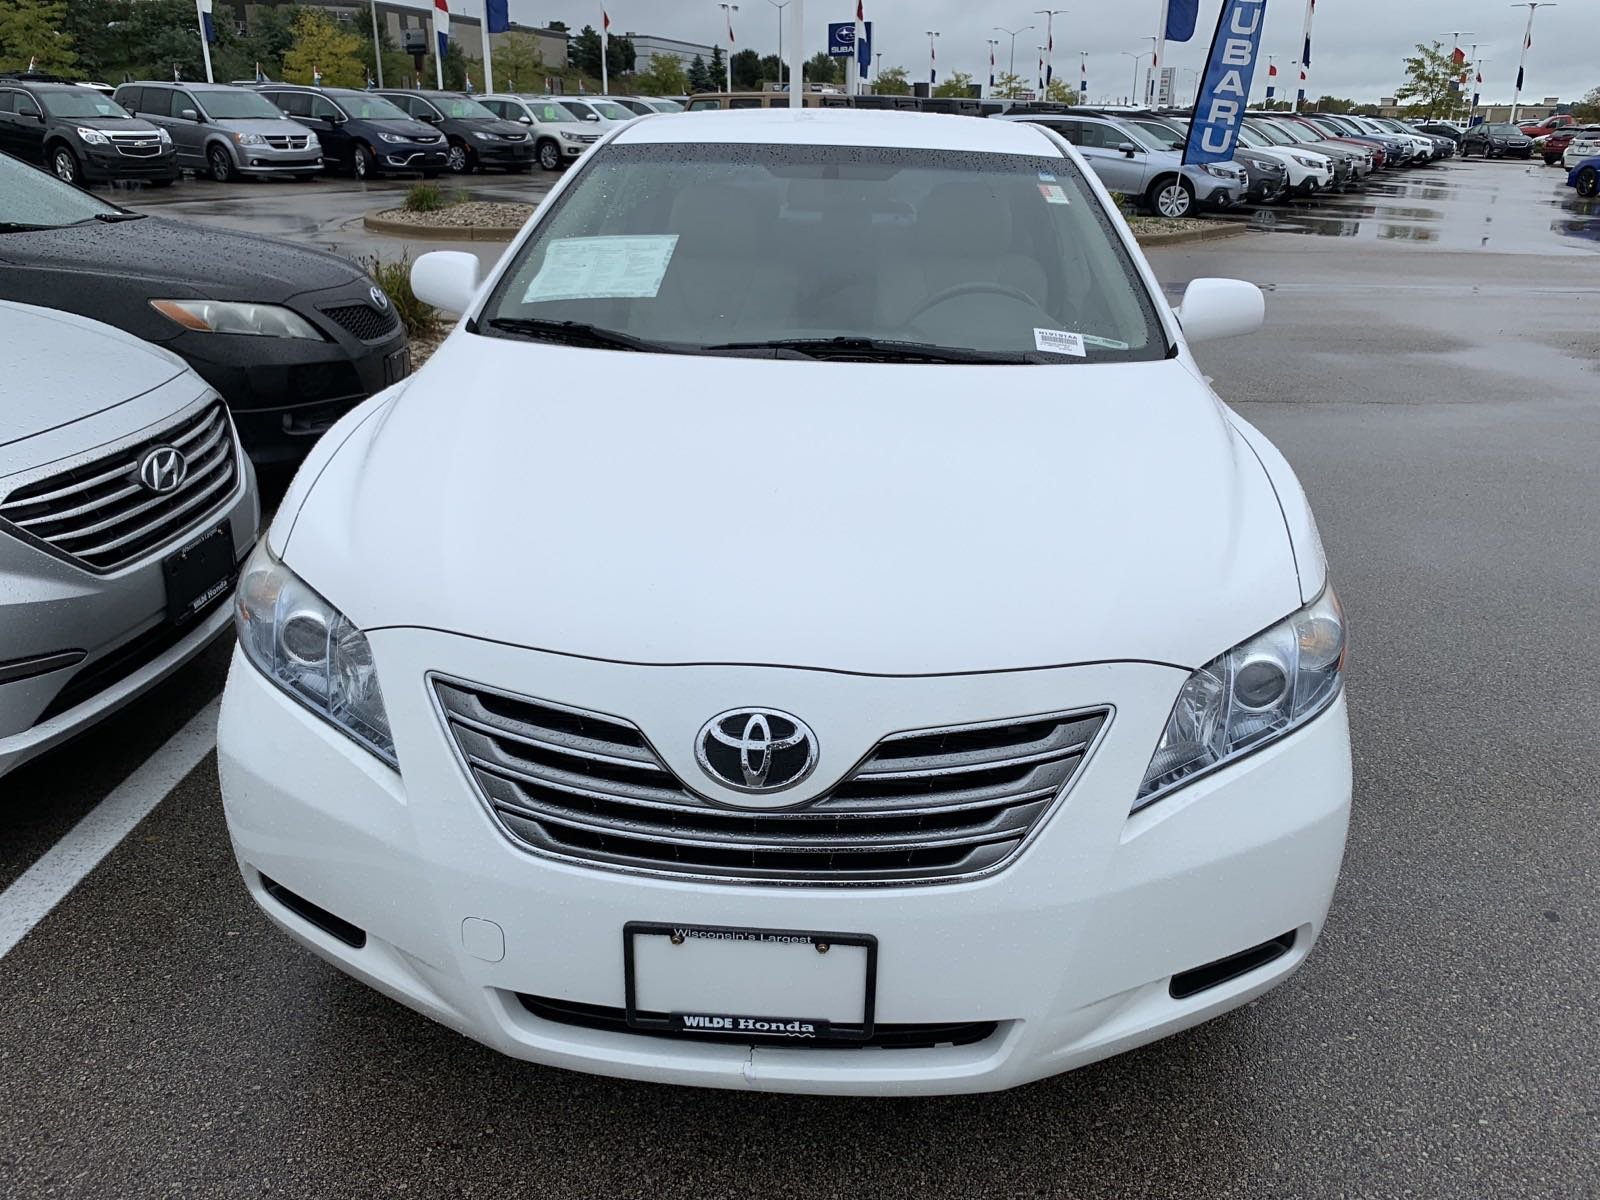 Pre Owned 2008 Toyota Camry Hybrid 4DR SDN HYBRID